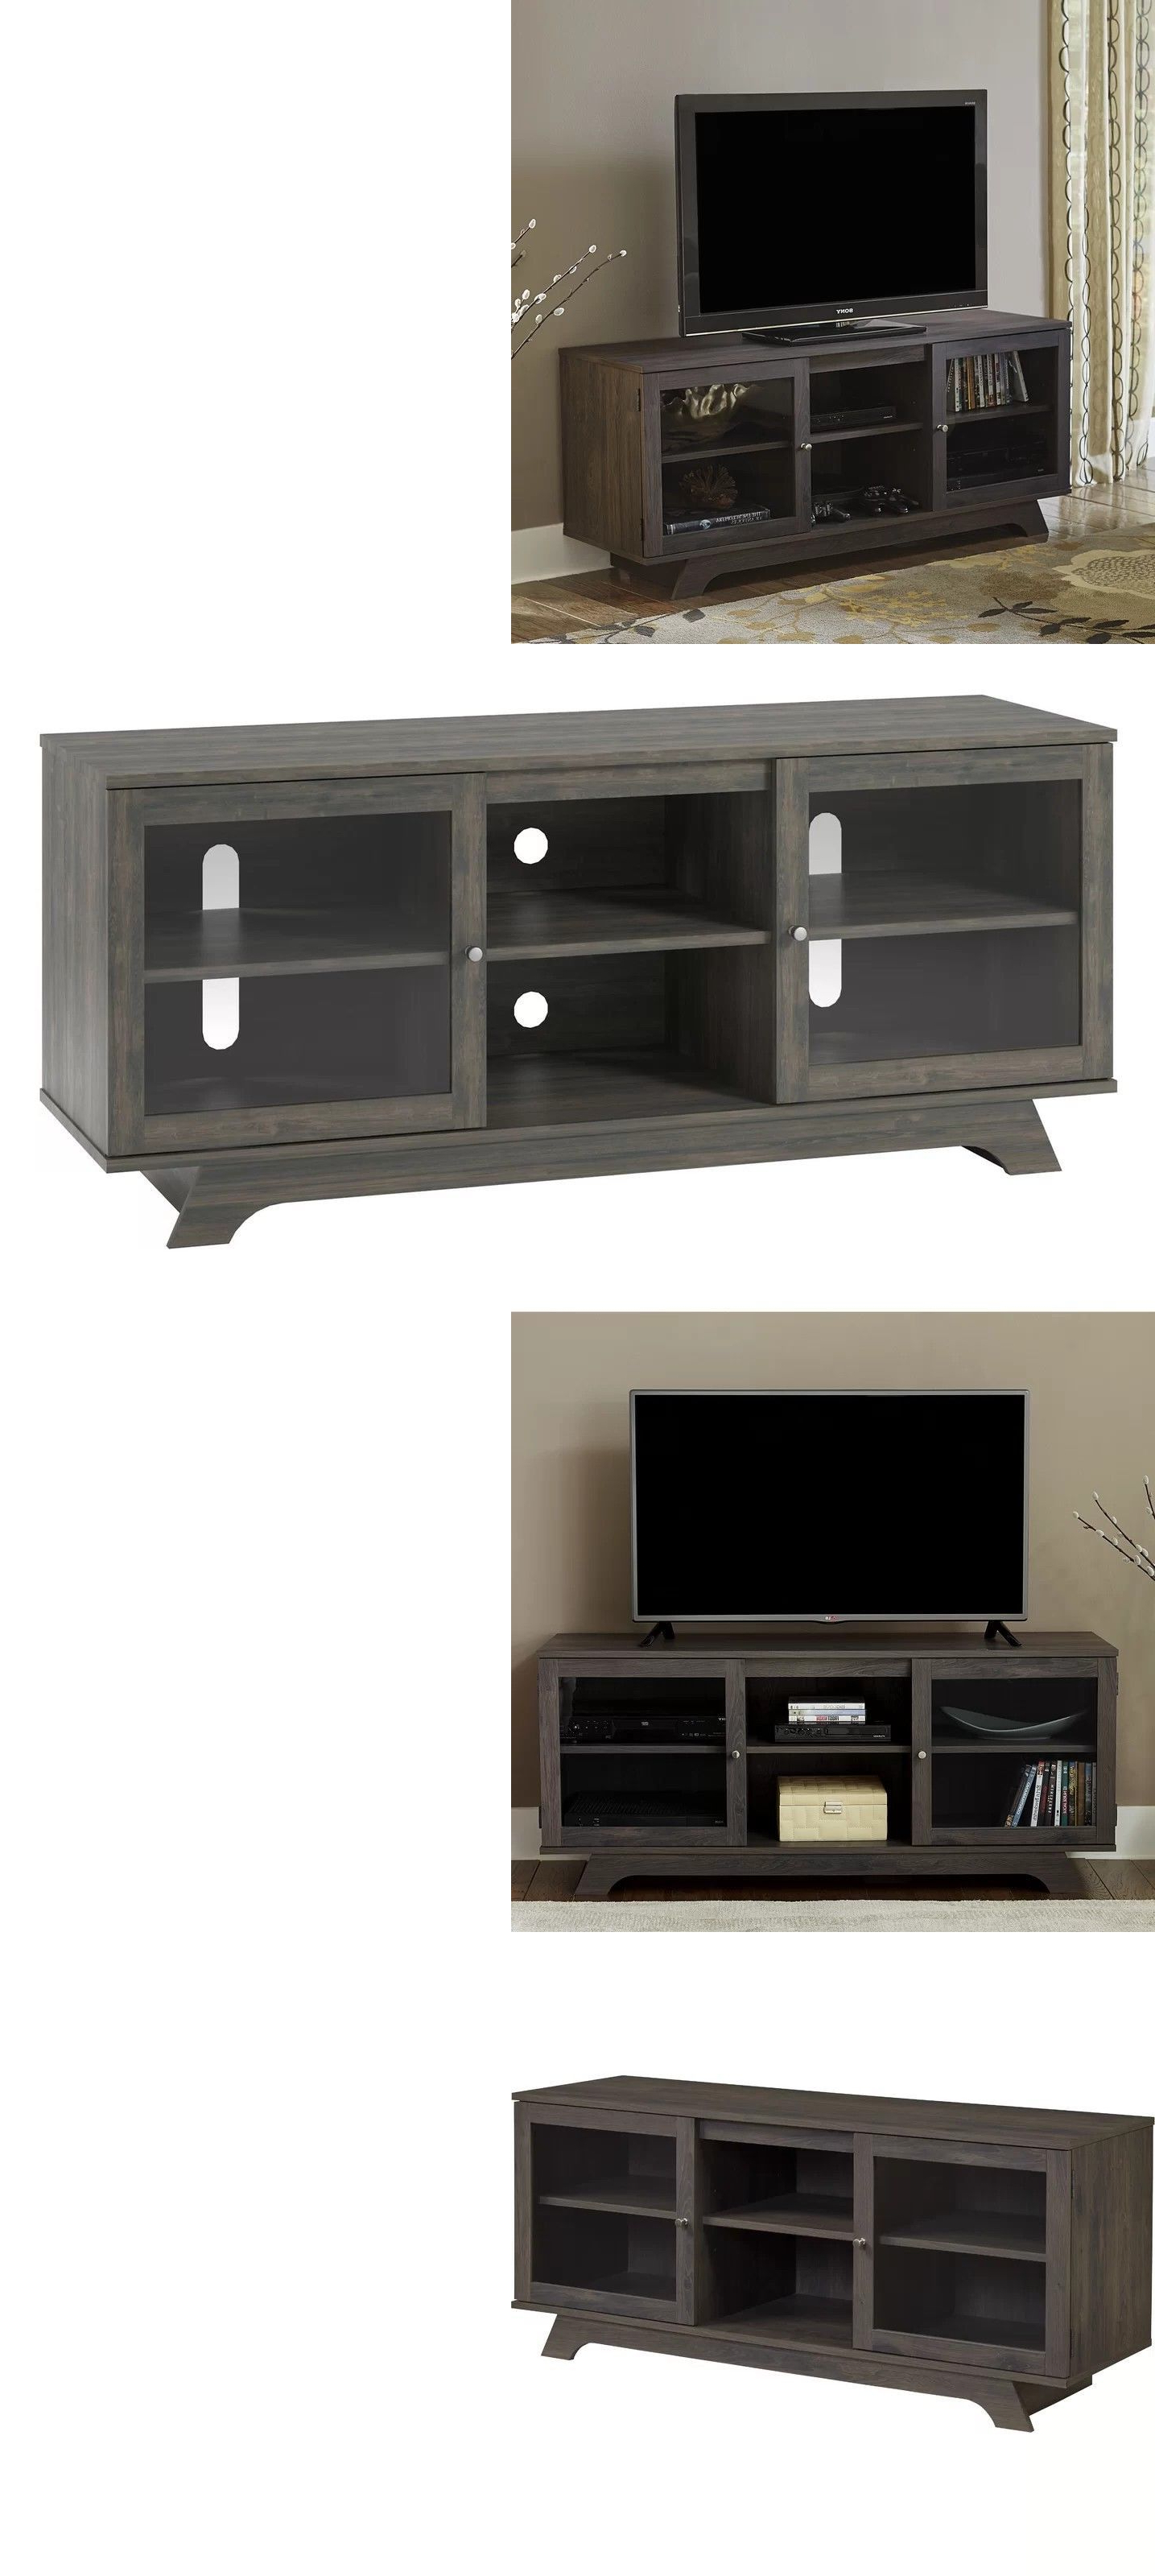 2017 Entertainment Units Tv Stands 20488: Sandstone Tv Stand For Tvs Up Inside Tv Entertainment Units (Gallery 15 of 20)